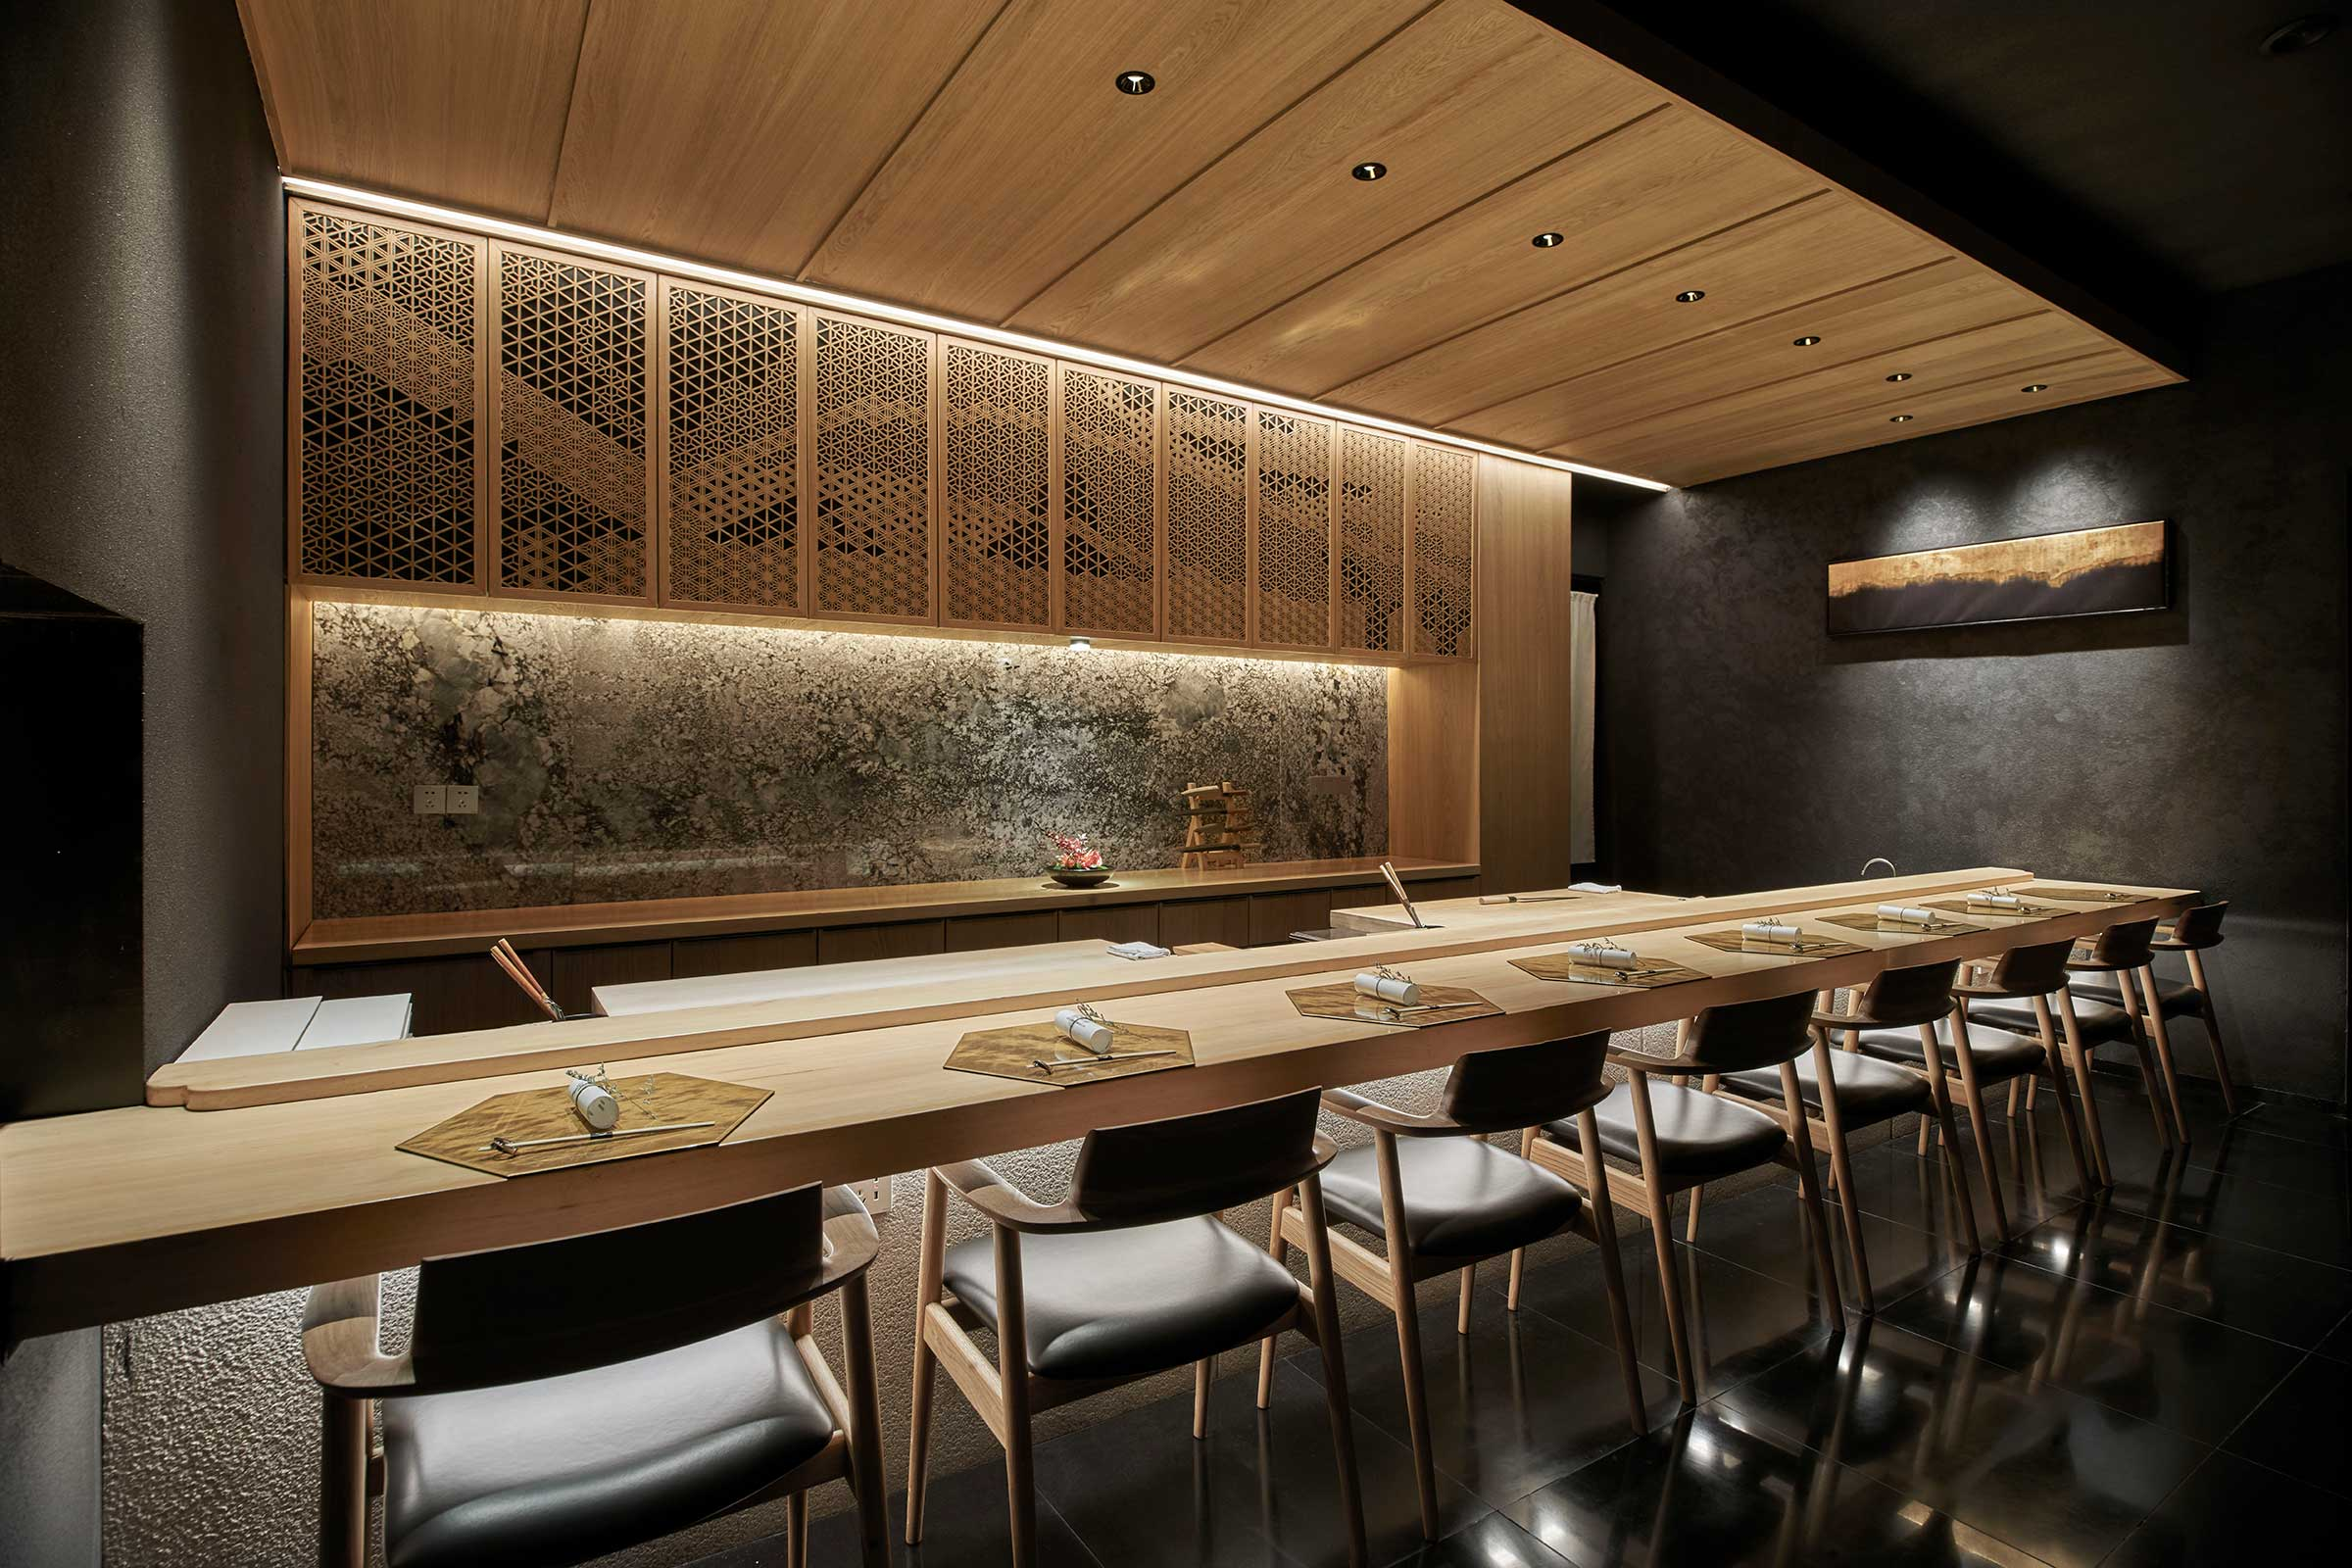 8-person-sushi-room-a.jpg